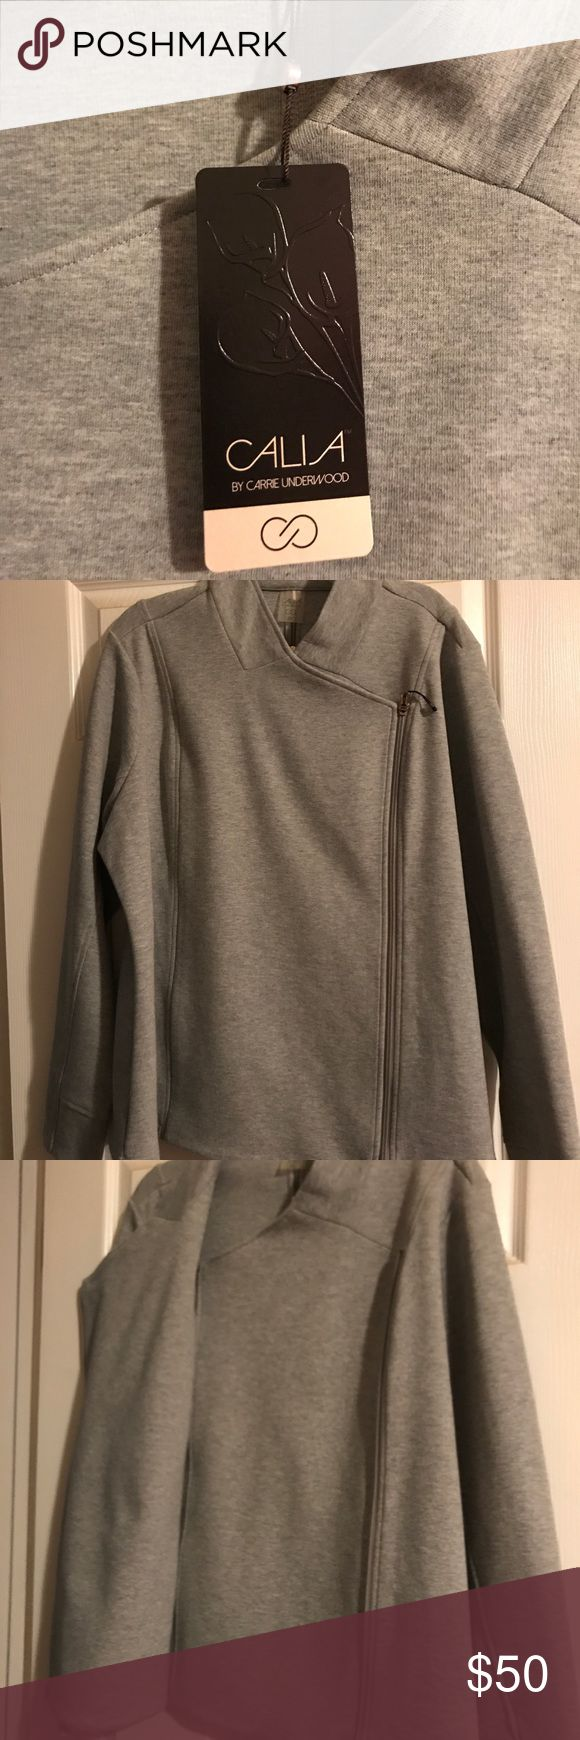 Calia by Carrie Underwood asymmetric zip jacket Brand new with tags and never been worn. Paid full retail at Dick's last winter. Lost weight and is too large. Smoke free home. CALIA by Carrie Underwood Jackets & Coats